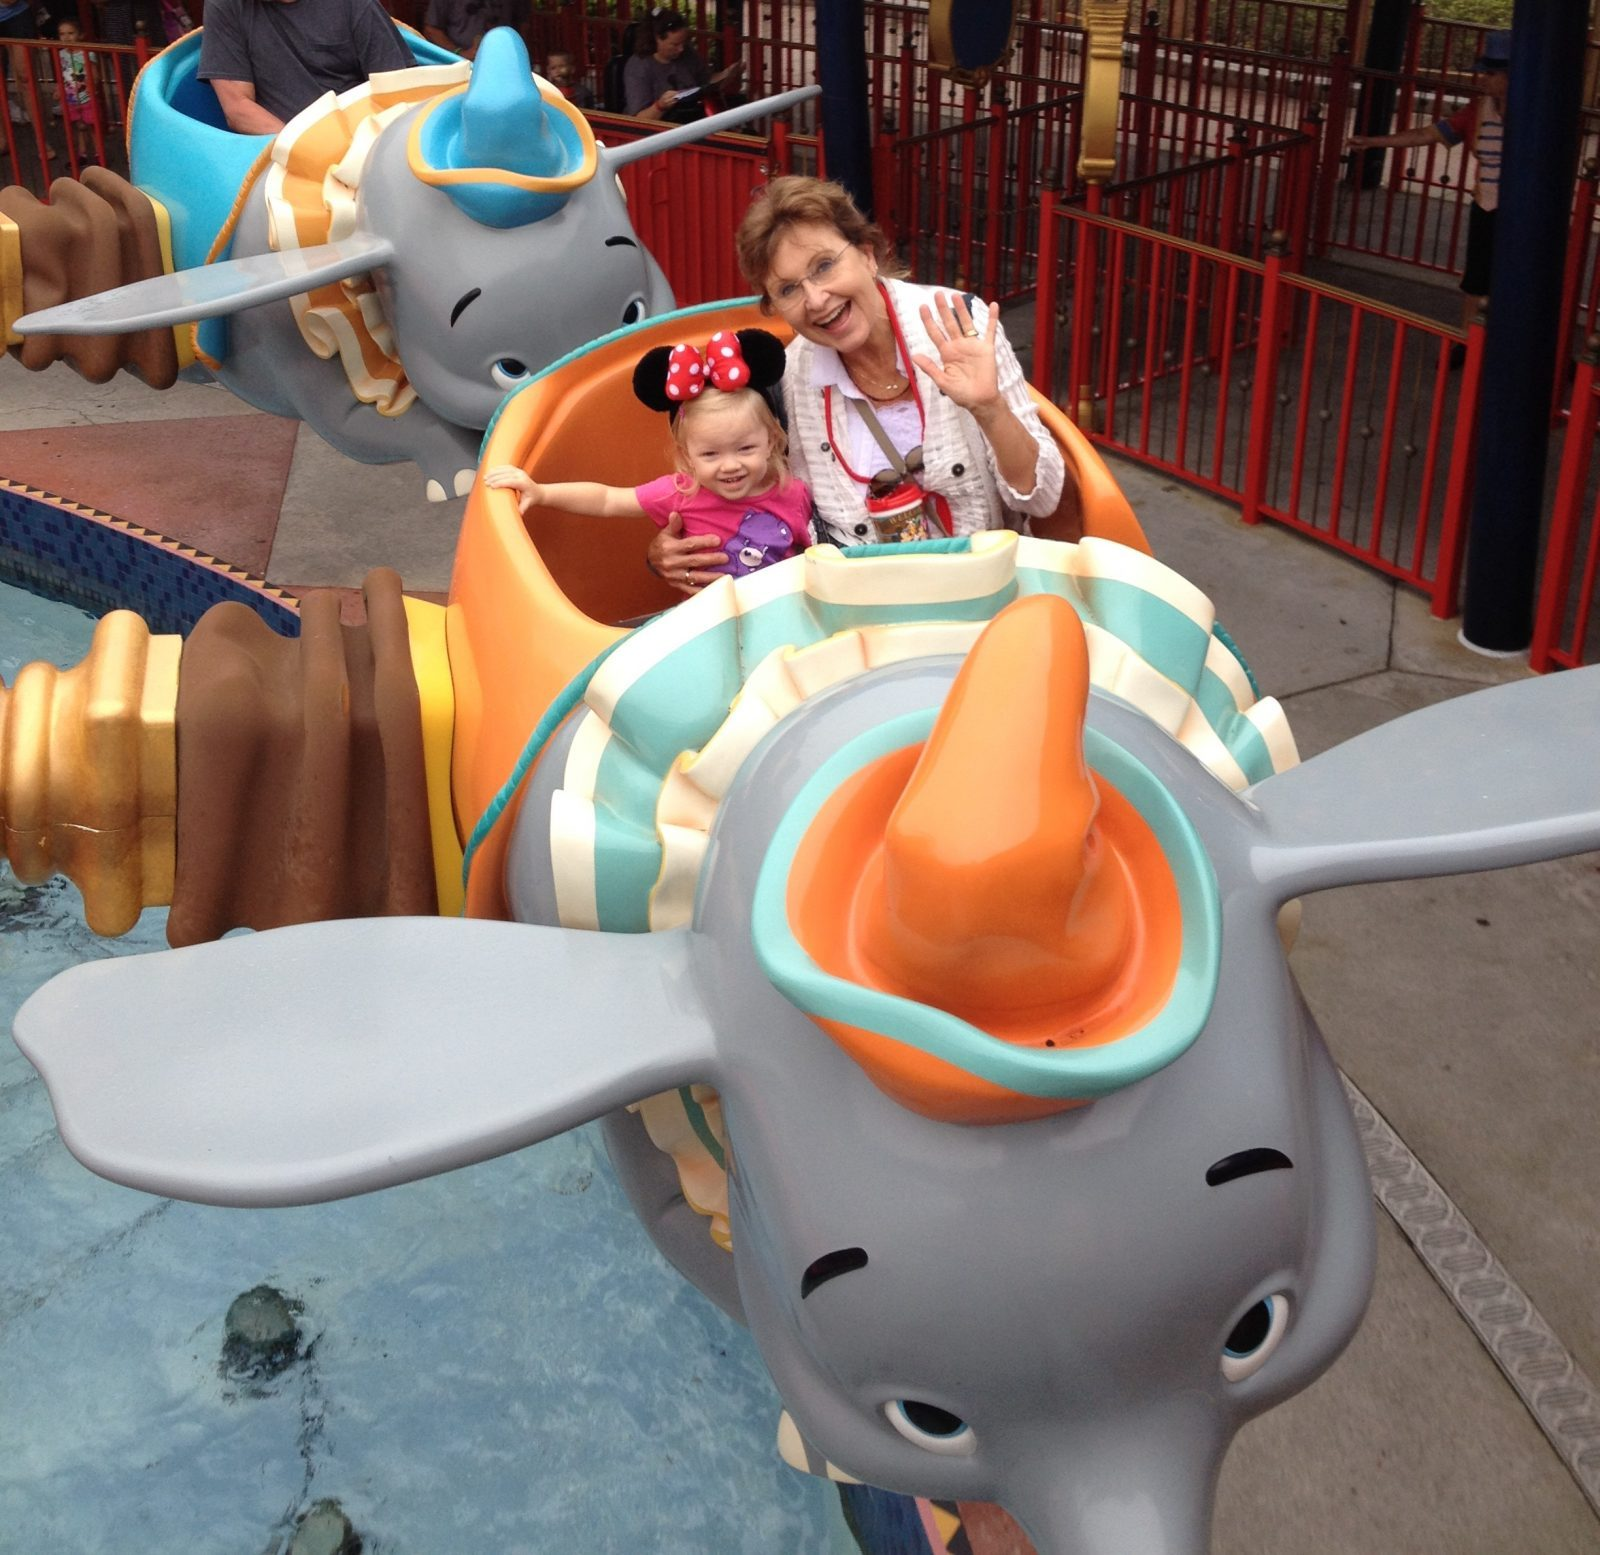 little girl and grandmother riding dumbo ride at magic kingdom